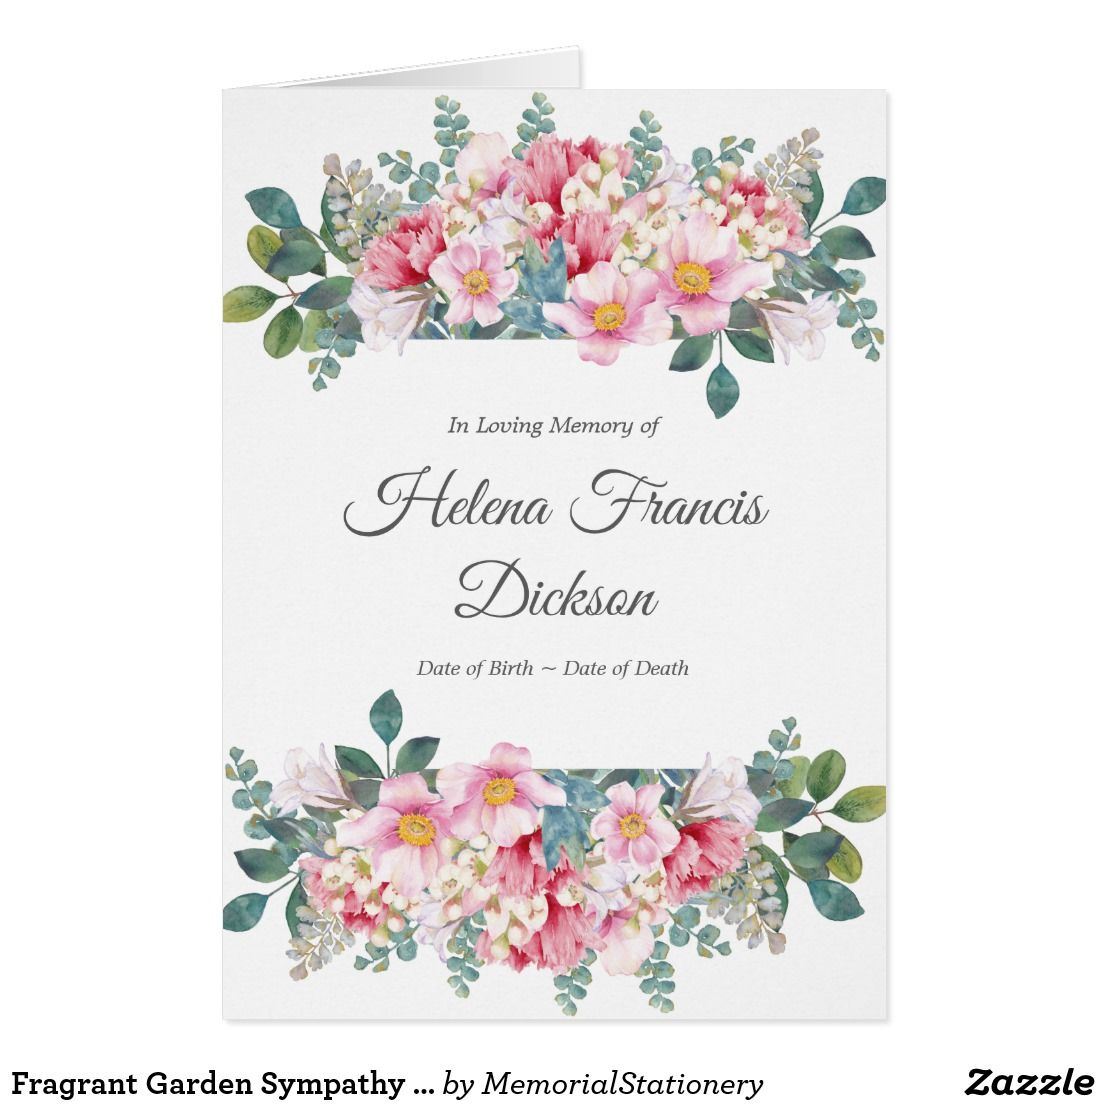 Funeral Thank You Cards Fragrant Garden 1 Zazzle Com With